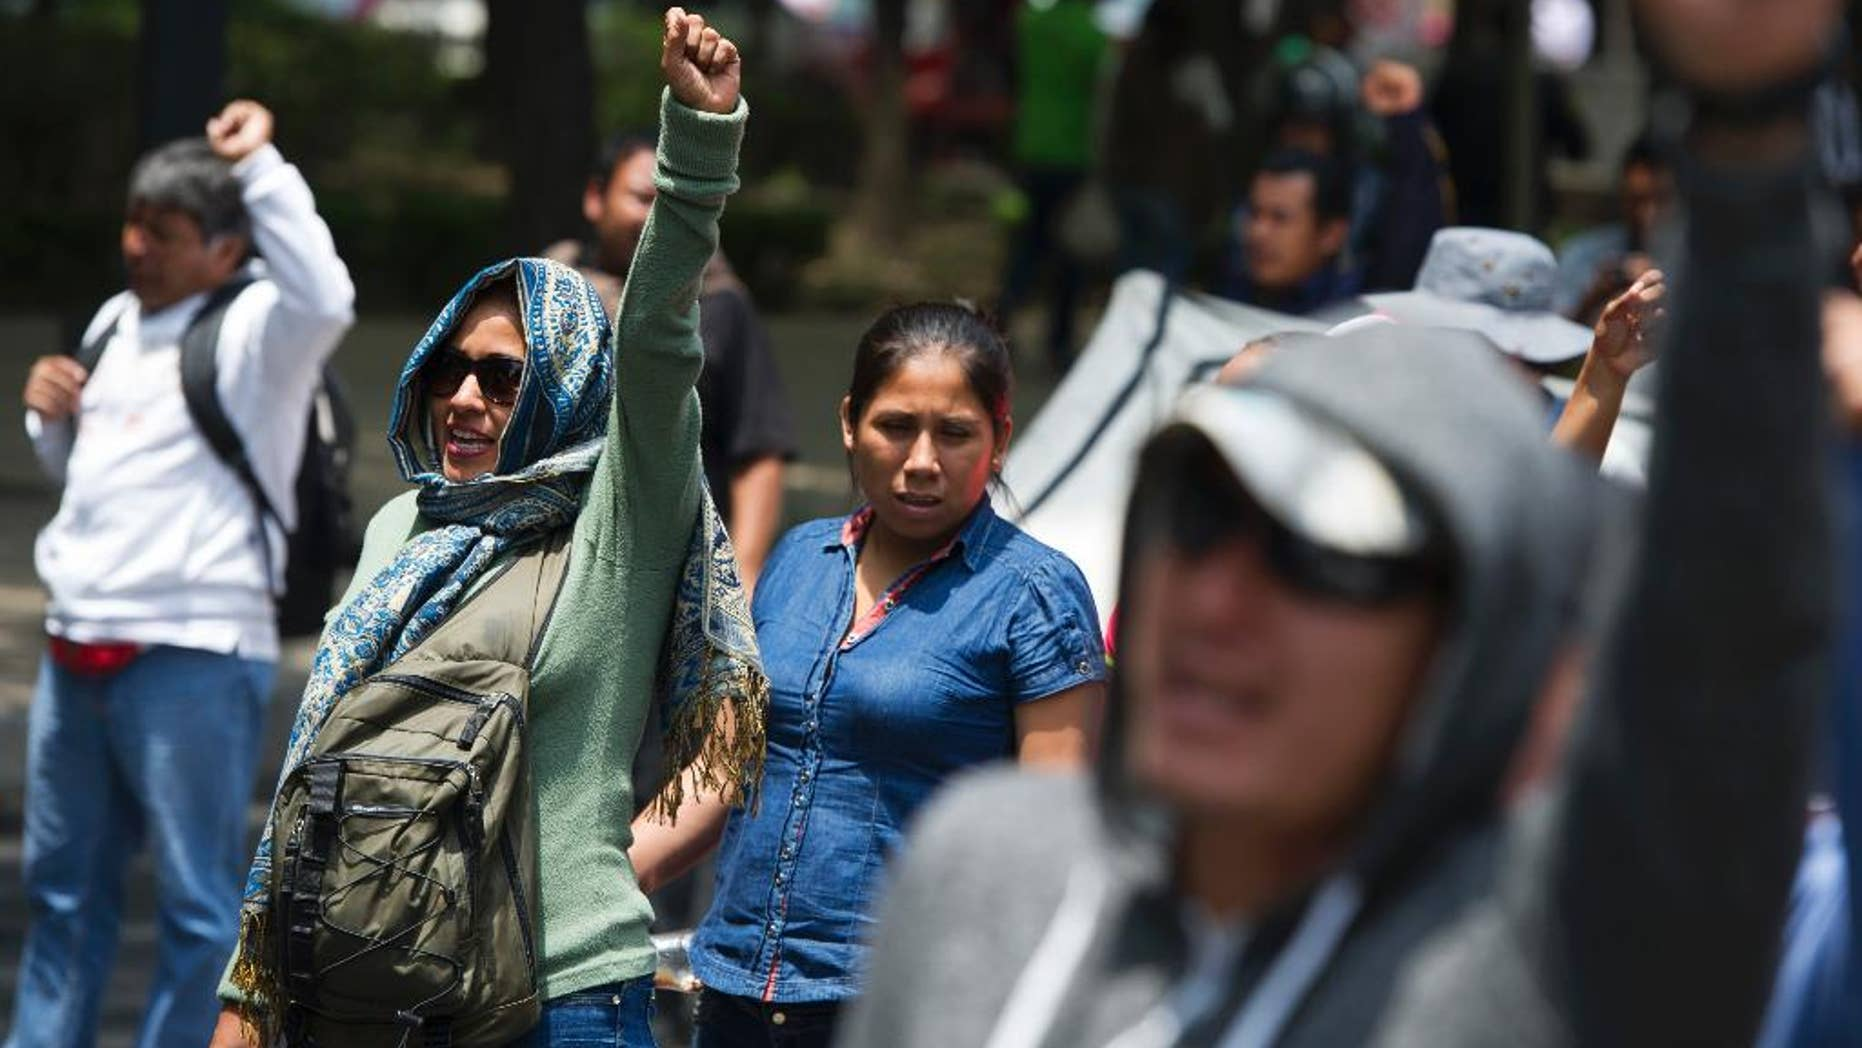 Protestors with the CNTE teachers union demonstrate along Paseo de la Reforma in Mexico City, Monday, June 13, 2016. The teachers union is striking against plans to overhaul the country's education system which include federally mandated teacher evaluations. (AP Photo/Nick Wagner)